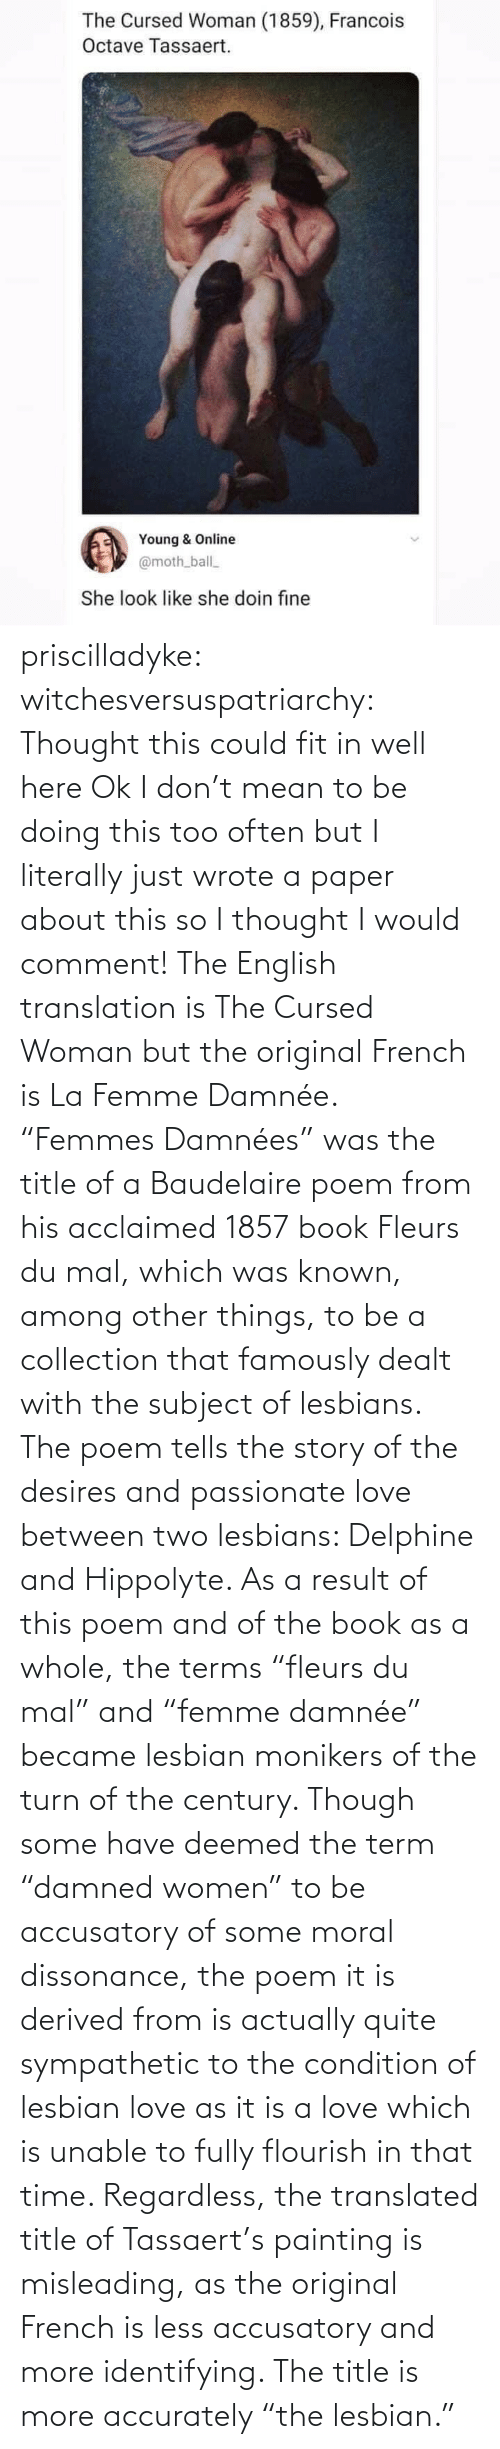 "French: priscilladyke:  witchesversuspatriarchy: Thought this could fit in well here   Ok I don't mean to be doing this too often but I literally just wrote a paper about this so I thought I would comment! The English translation is The Cursed Woman but the original French is La Femme Damnée. ""Femmes Damnées"" was the title of a Baudelaire poem from his acclaimed 1857 book Fleurs du mal, which was known, among other things, to be a collection that famously dealt with the subject of lesbians. The poem tells the story of the desires and passionate love between two lesbians:  Delphine and Hippolyte. As a result of this poem and of the book as a whole, the terms ""fleurs du mal"" and ""femme damnée"" became lesbian monikers of the turn of the century. Though some have deemed the term ""damned women"" to be accusatory of some moral dissonance, the poem it is derived from is actually quite sympathetic to the condition of lesbian love as it is a love which is unable to fully flourish in that time. Regardless, the translated title of Tassaert's painting is misleading, as the original French is less accusatory and more identifying. The title is more accurately ""the lesbian."""